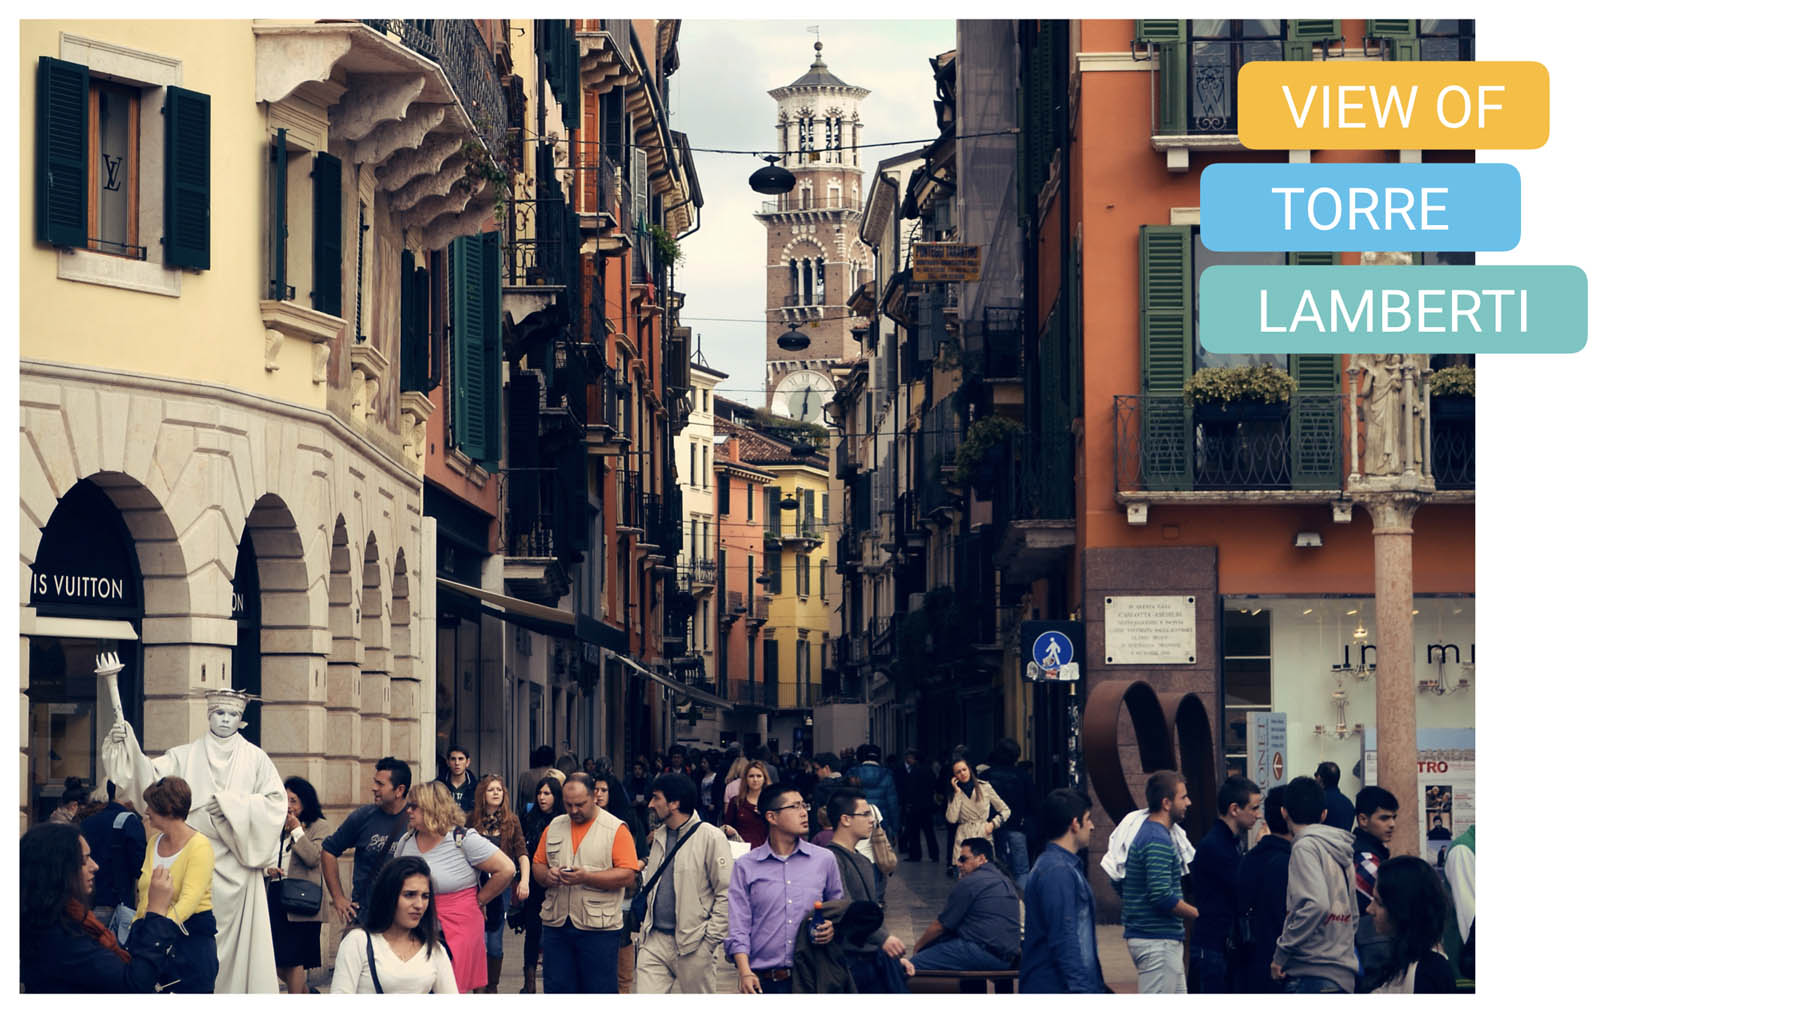 view of torre lamberti verona bike tour